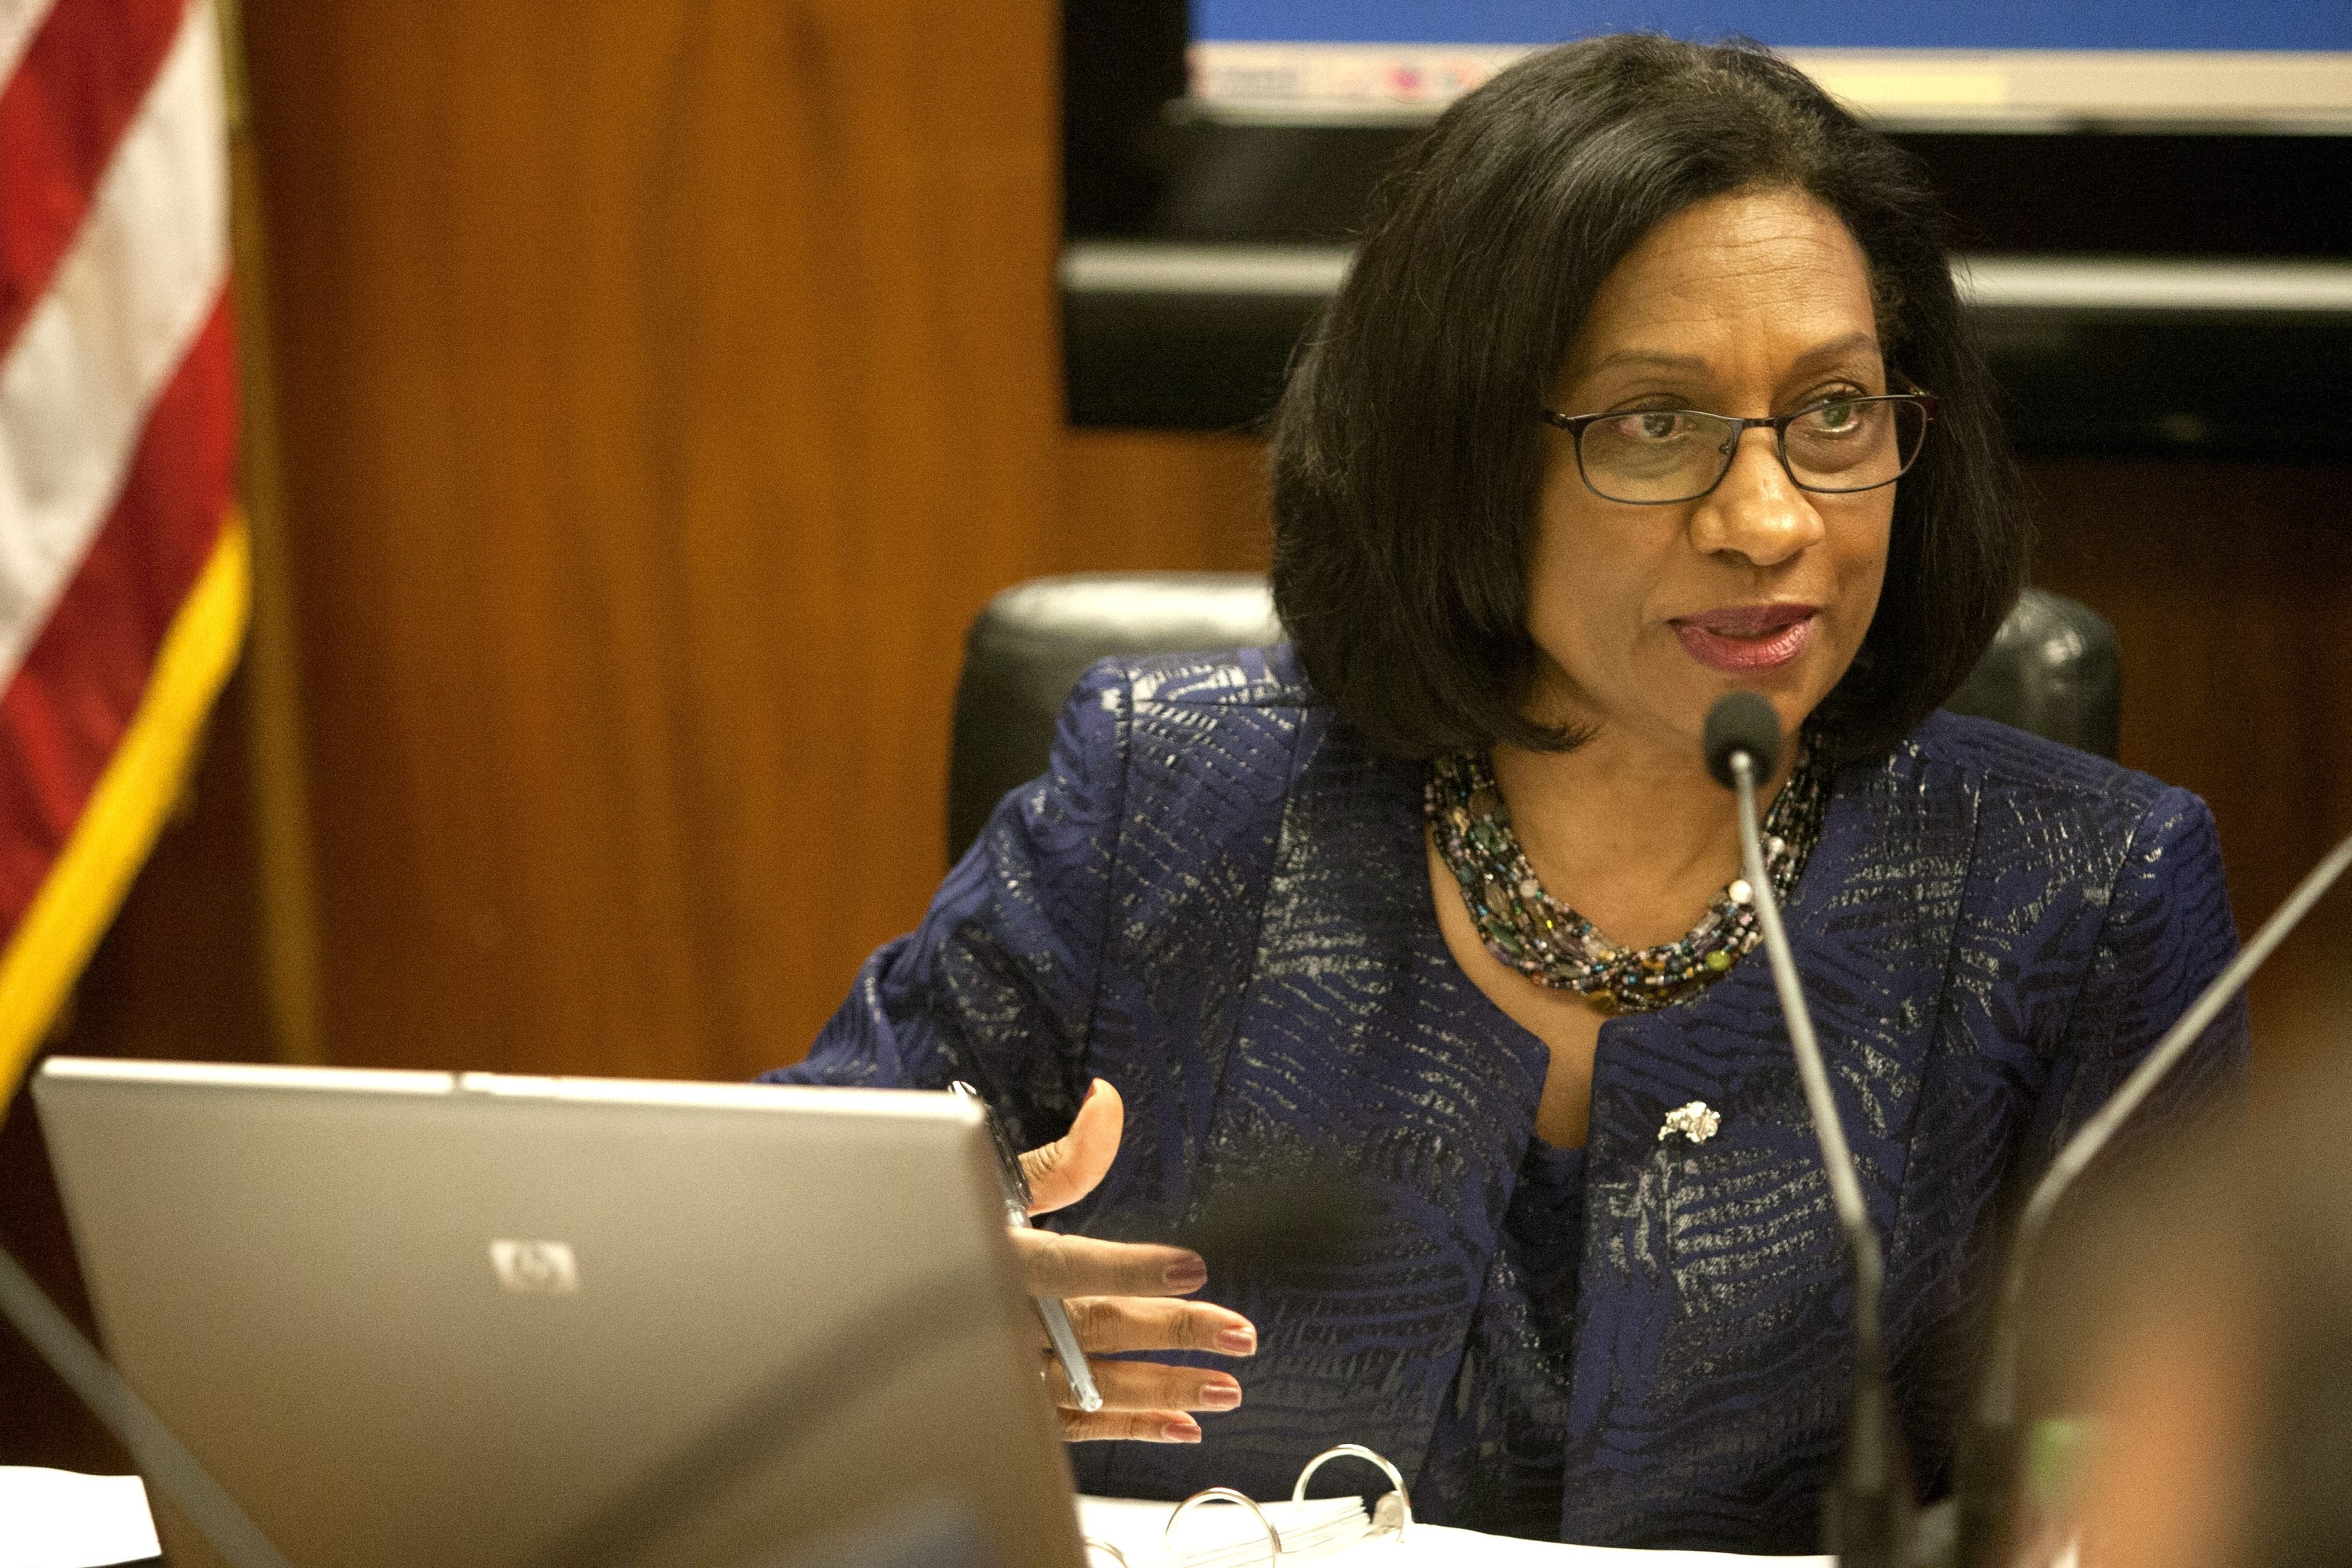 Thirty-five percent of registered voters in a recent survey gave a poor grade to the job performance of Buffalo Schools Superintendent Pamela C. Brown. (Buffalo News file photo)